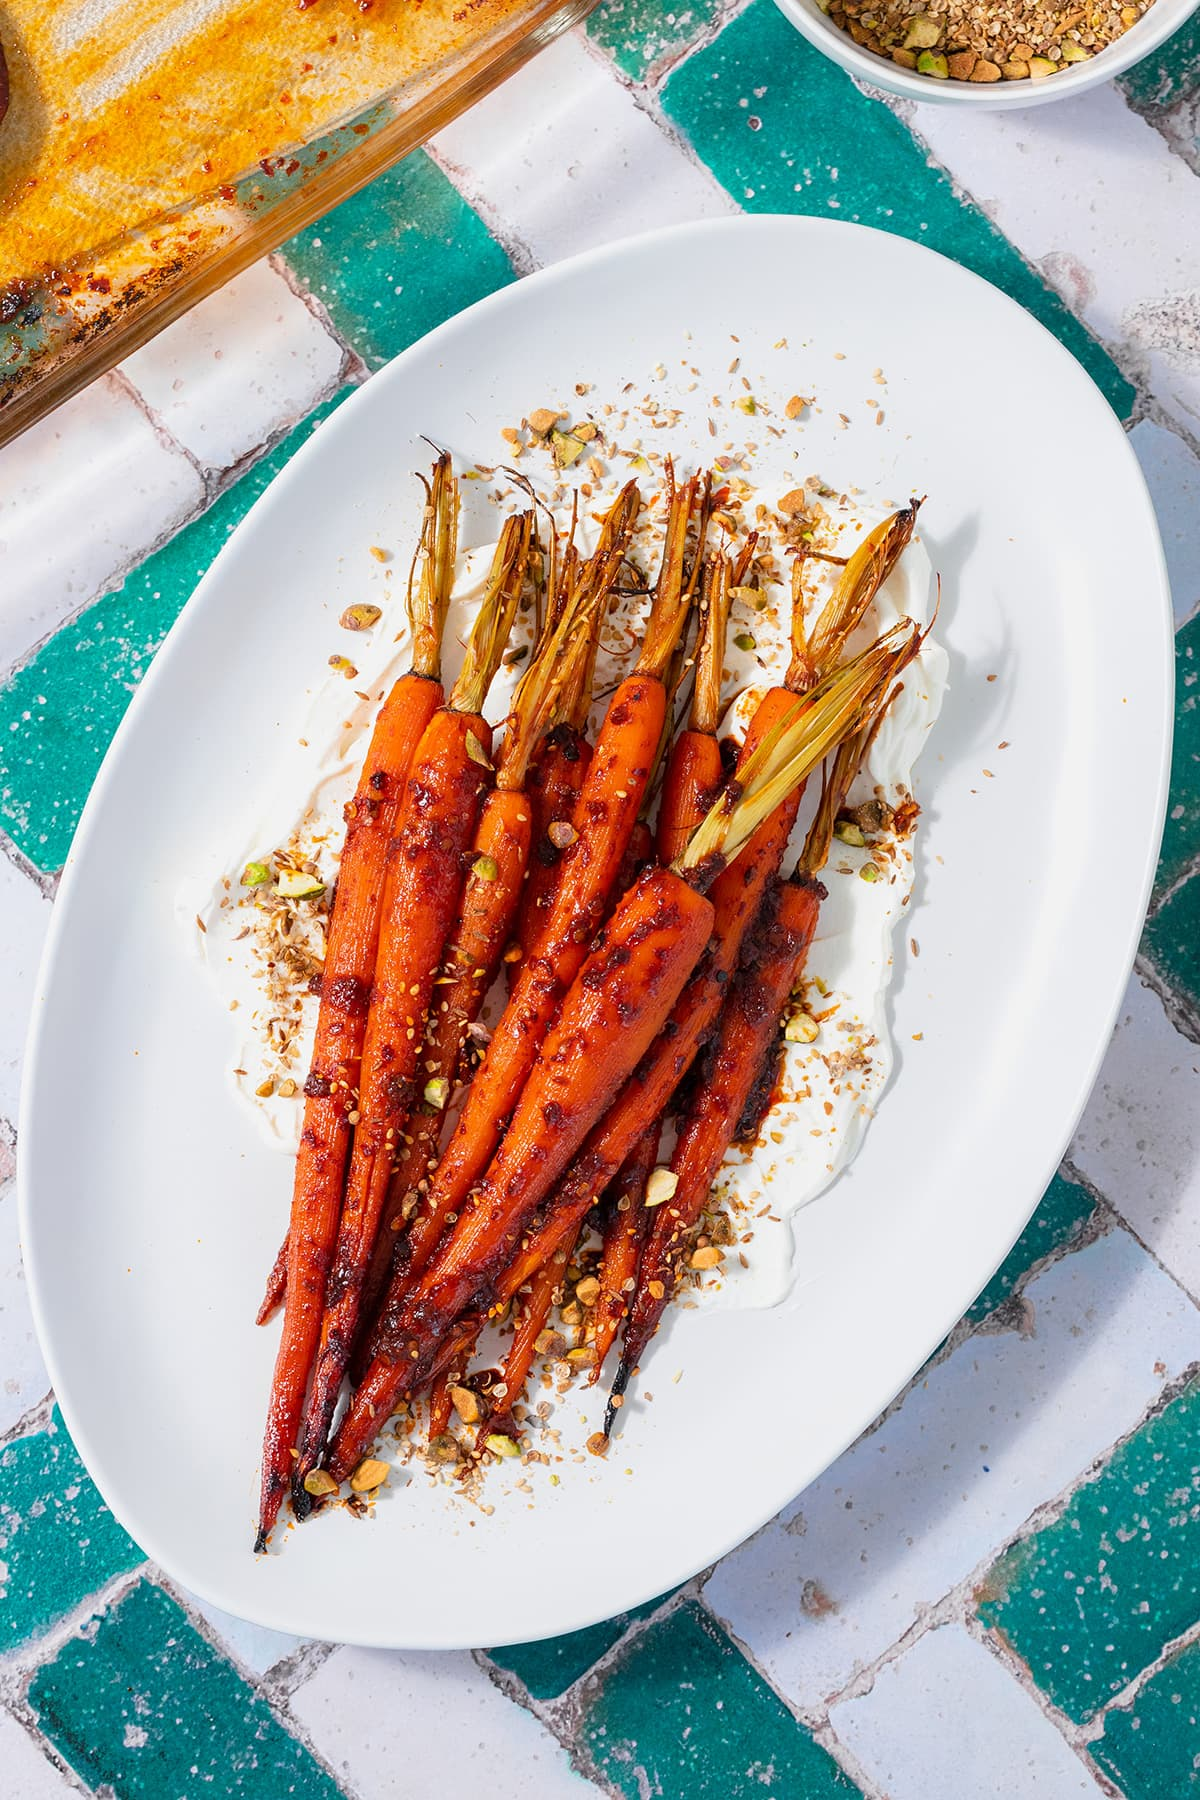 Harissa roasted carrots on a white serving platter with labneh spread under the carrots. Sprinkled with dukkah. Plate on a white and turquoise tile table.